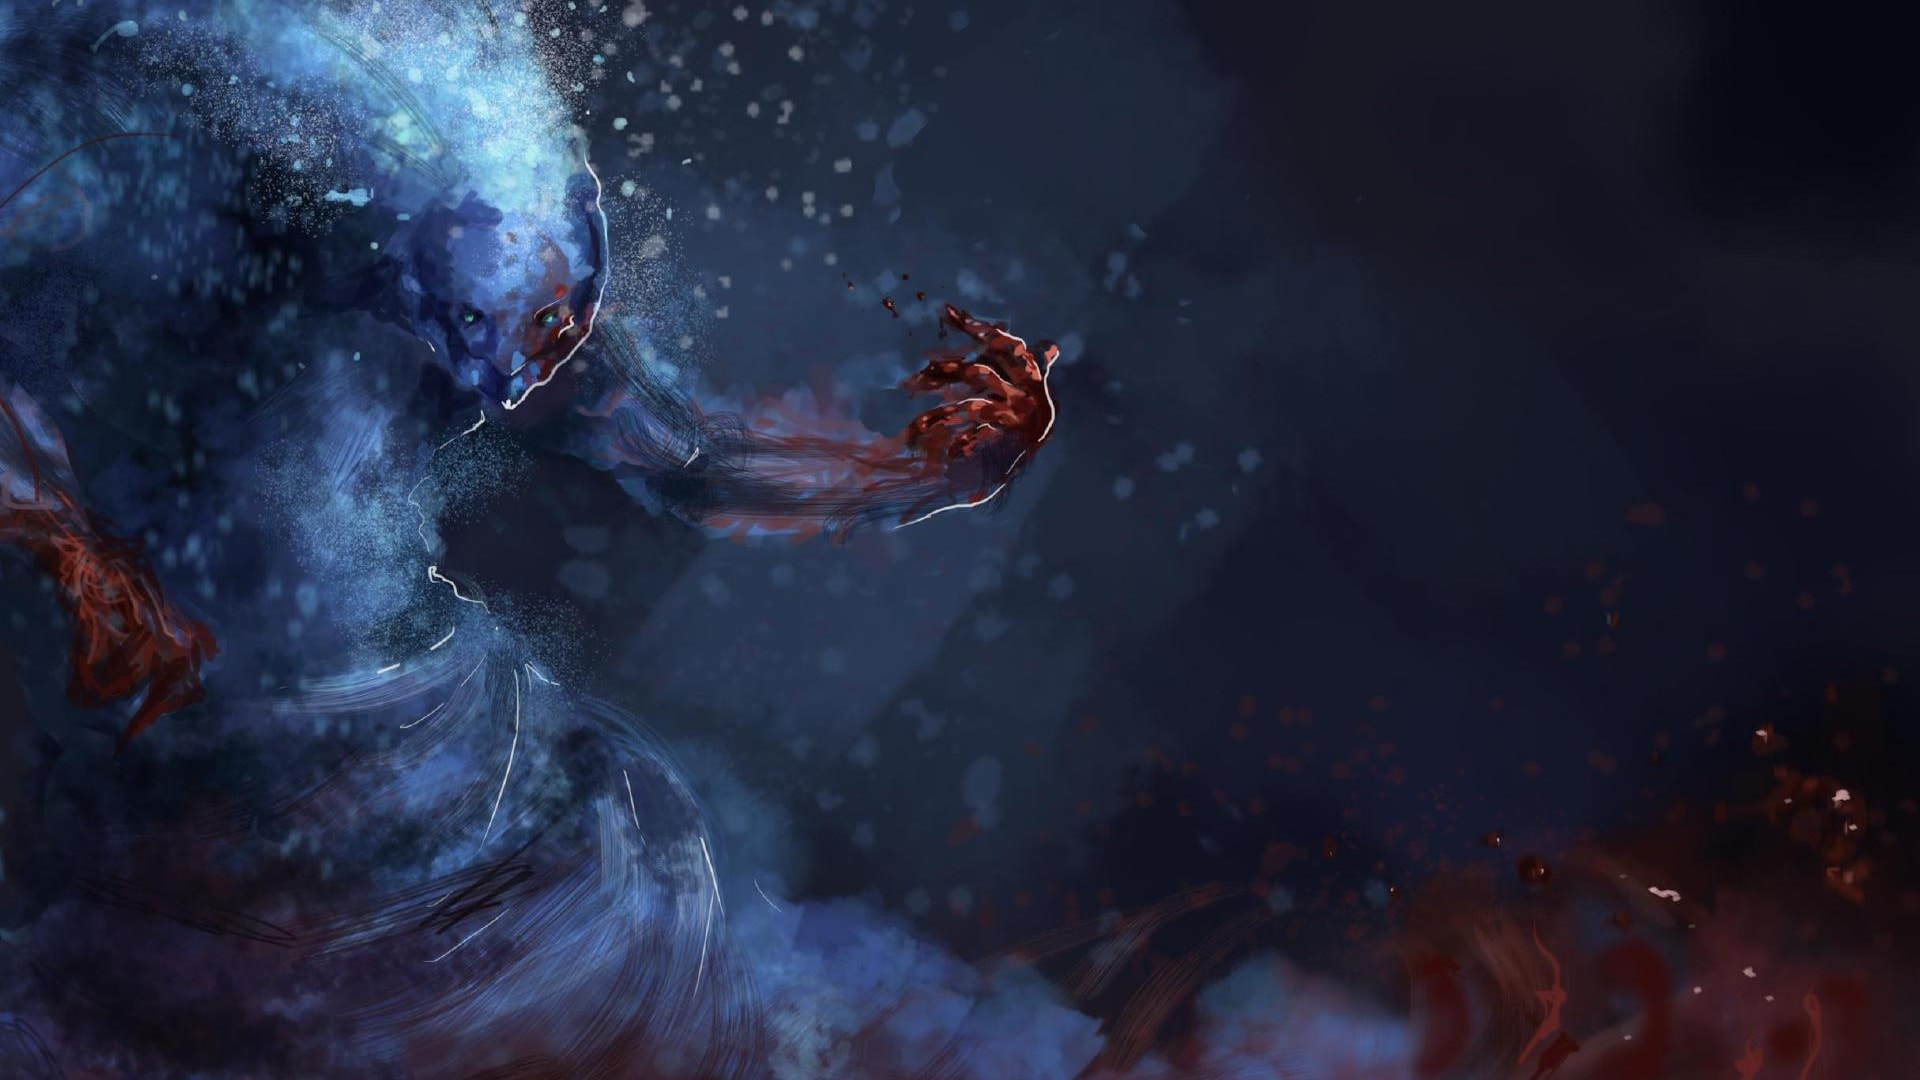 Dota2 : Morphling Wallpapers hd